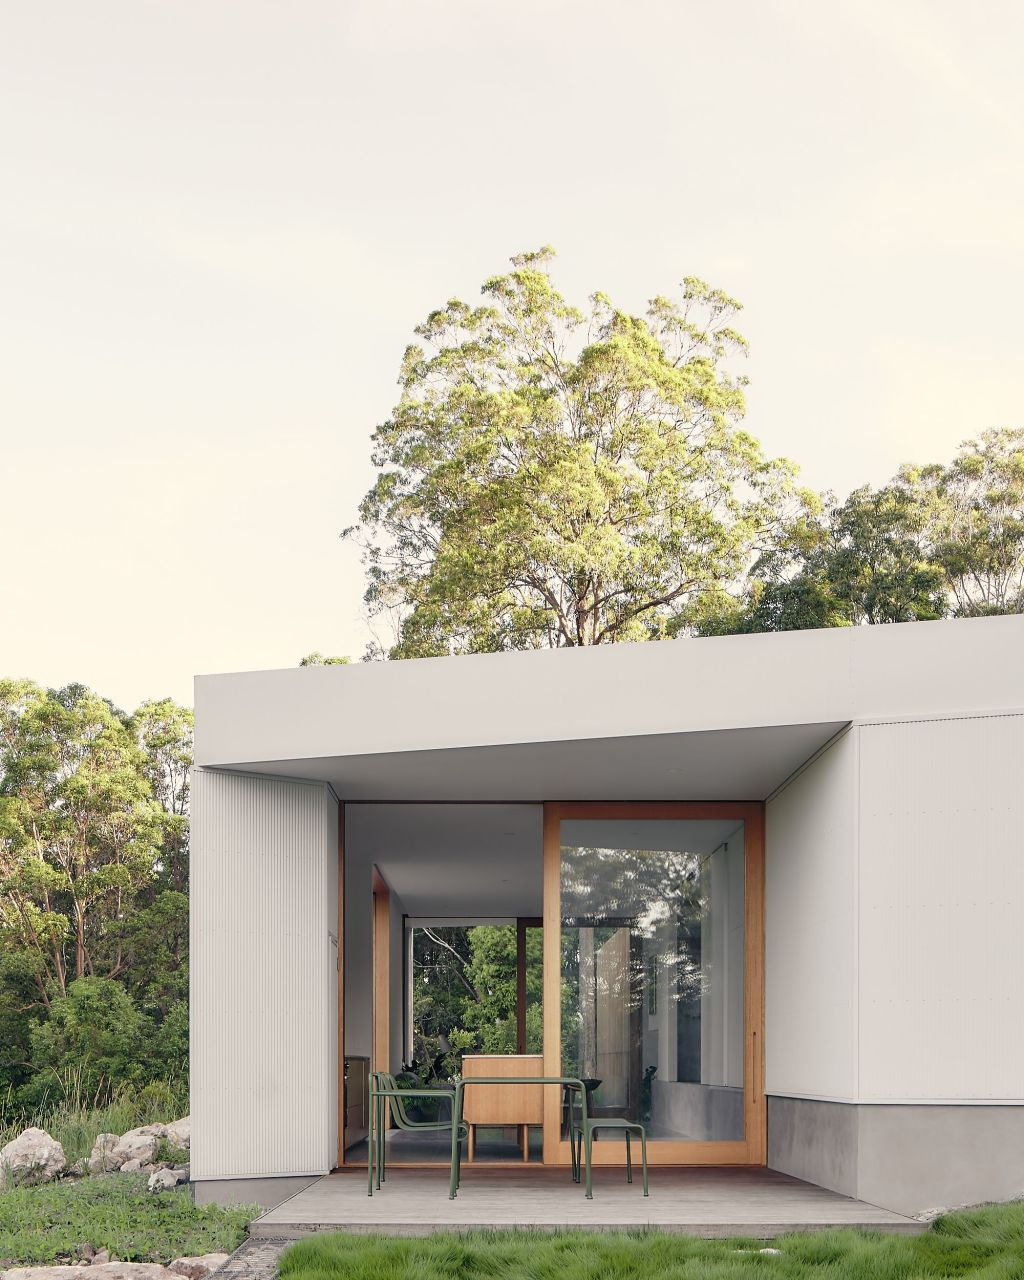 A Sunshine Coast designed for the views by Atelier Chen Hung. The outdoor deck is chipped into the rectilinear floor plan.